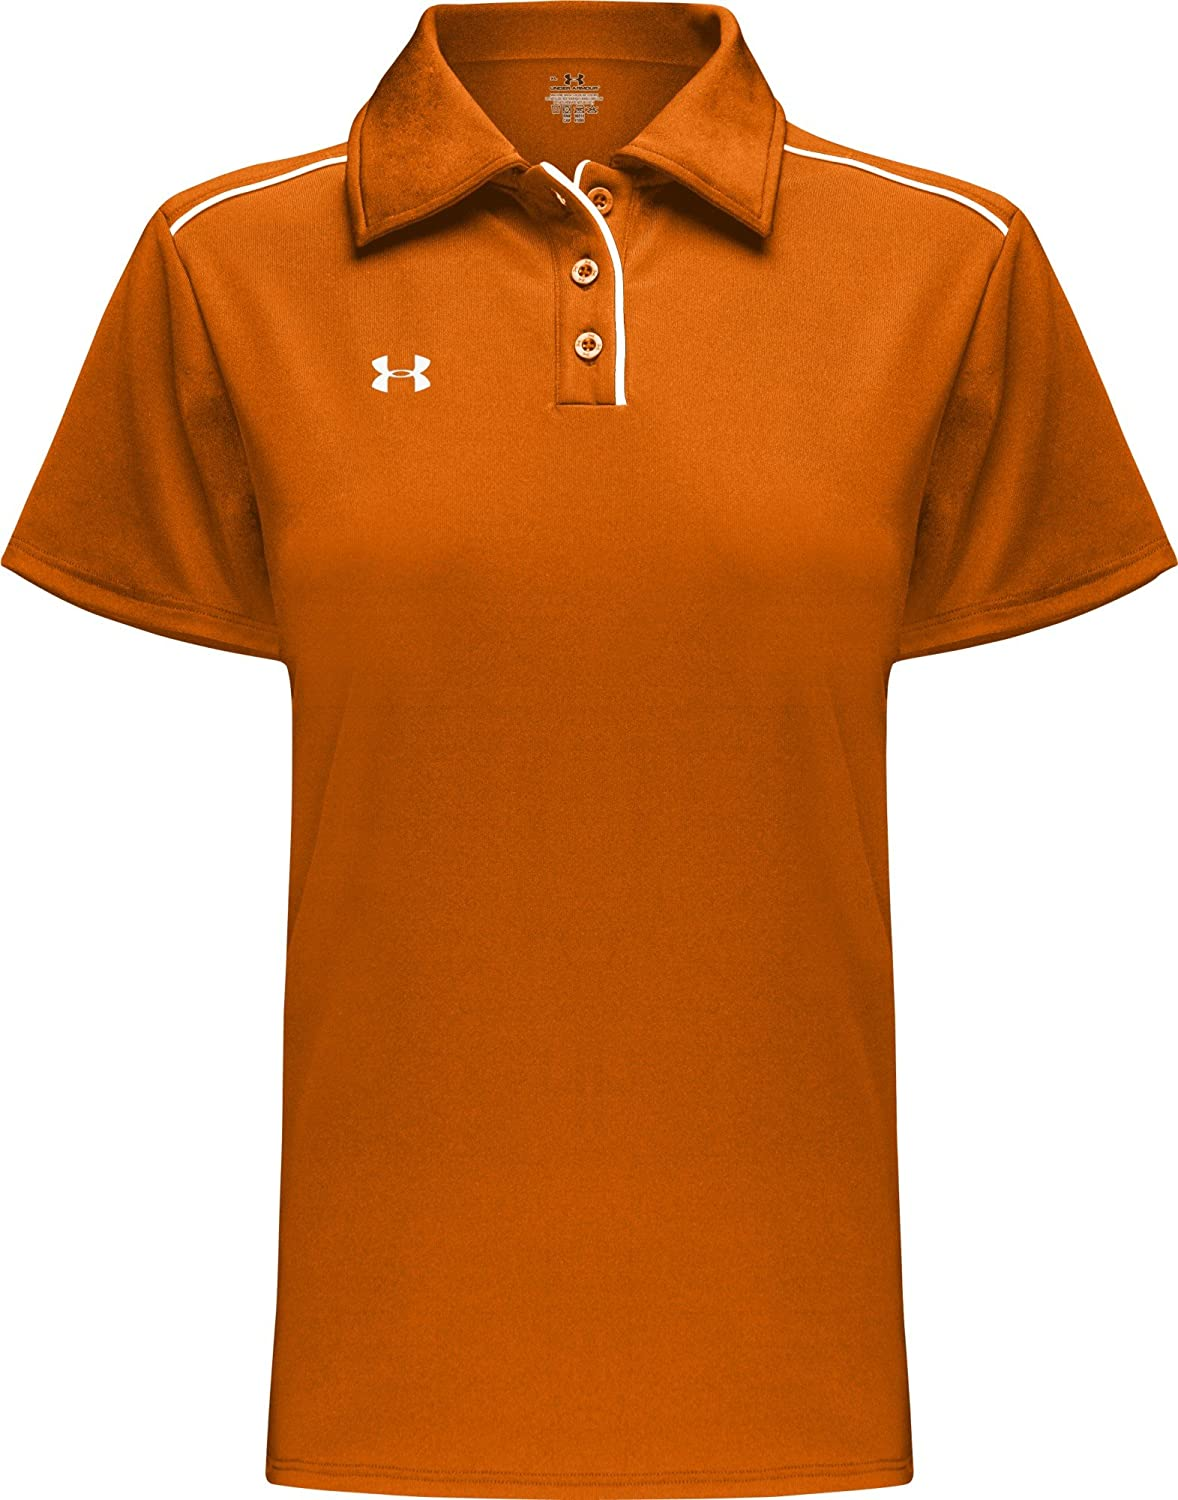 Under Armour Coaches Regular store - Easy-to-use Polo Women's